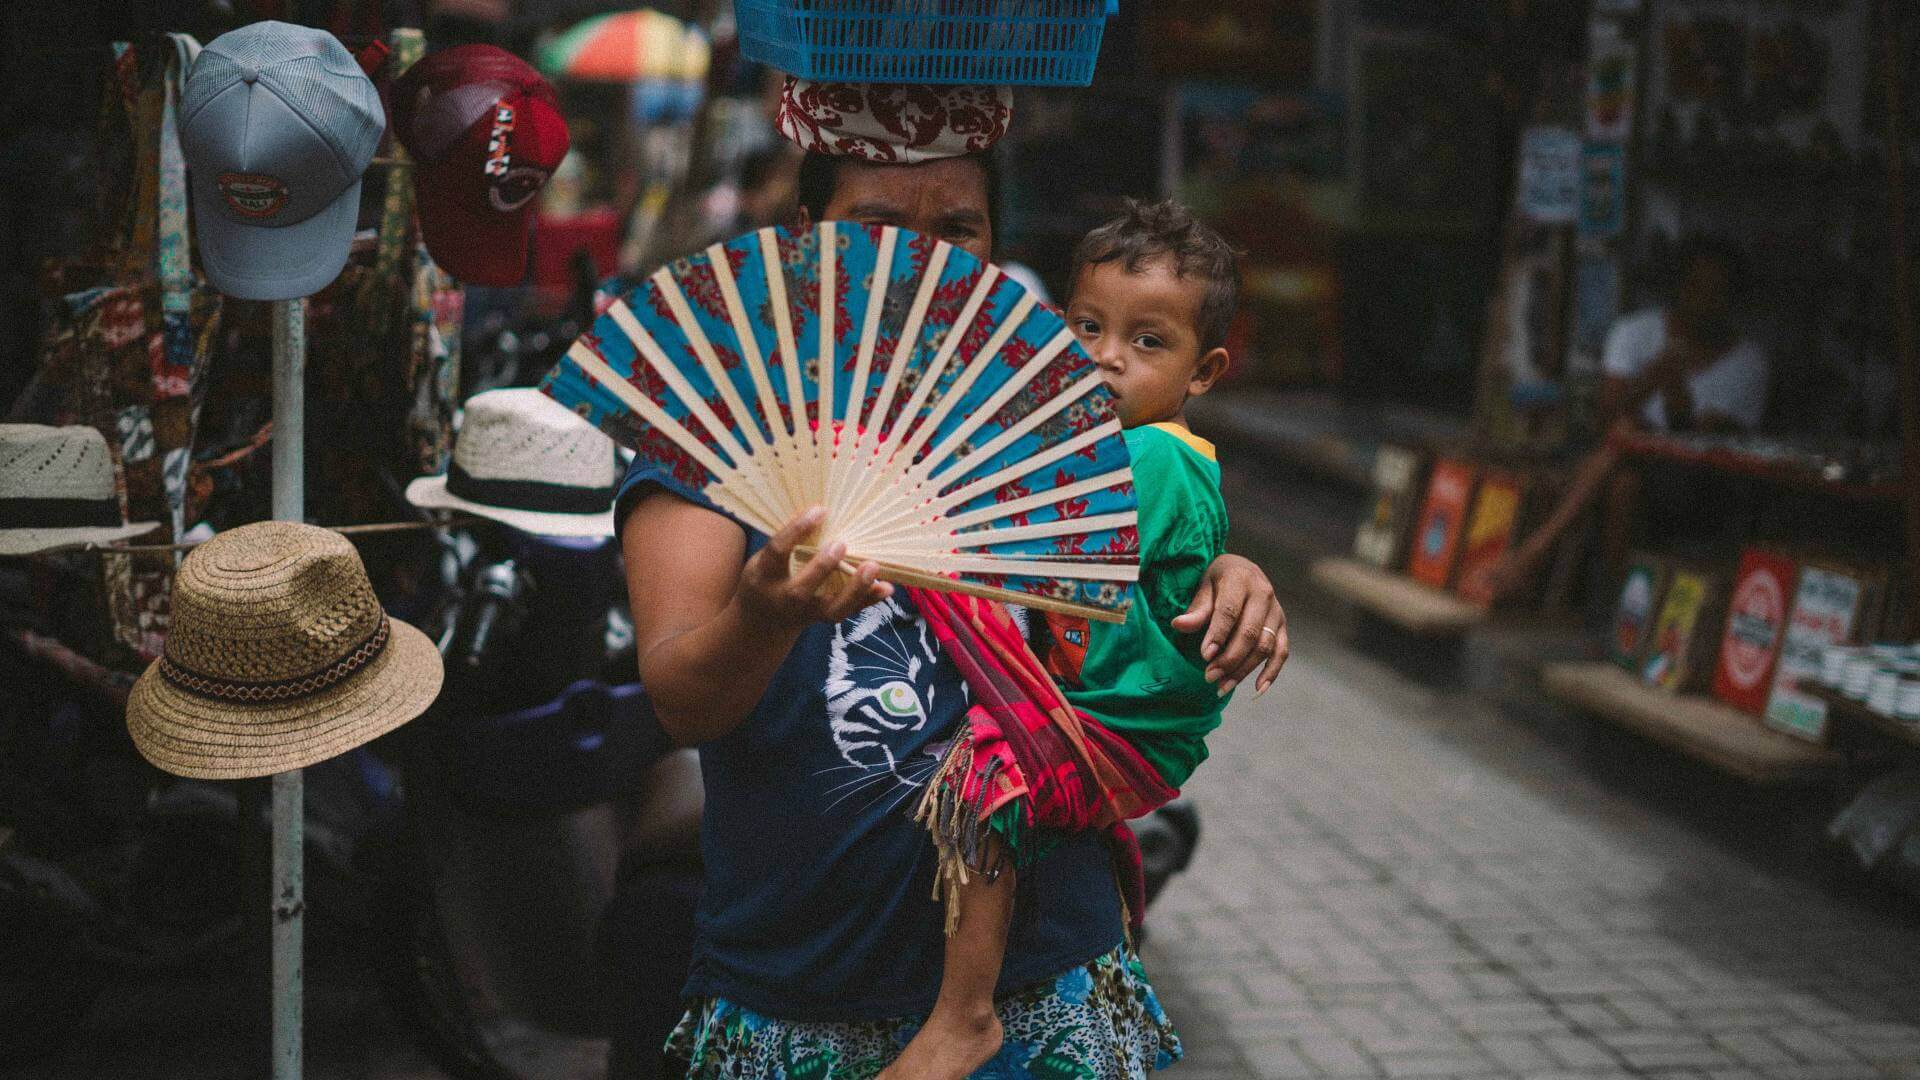 A woman is holding her son with one hand and a fan in the other